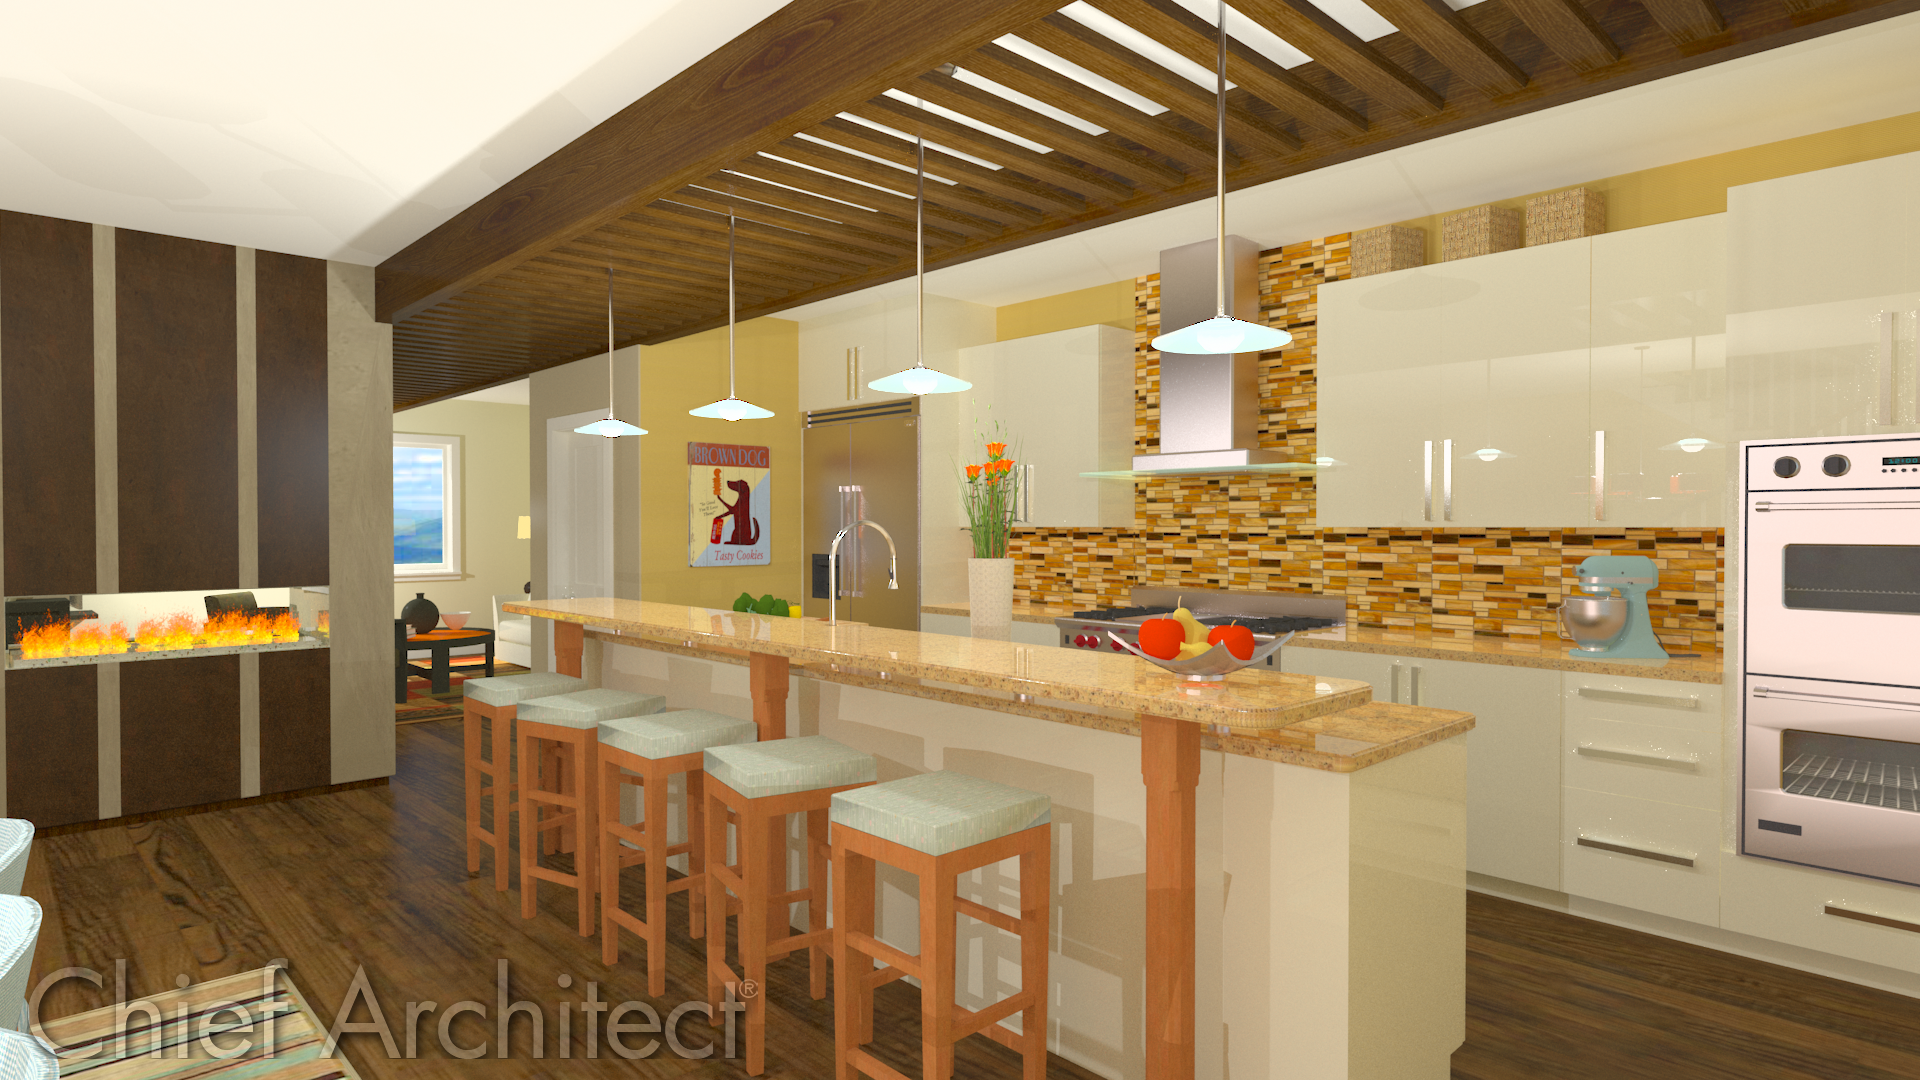 Cottage Beach Kitchen Ray Trace Done With Chief Architect